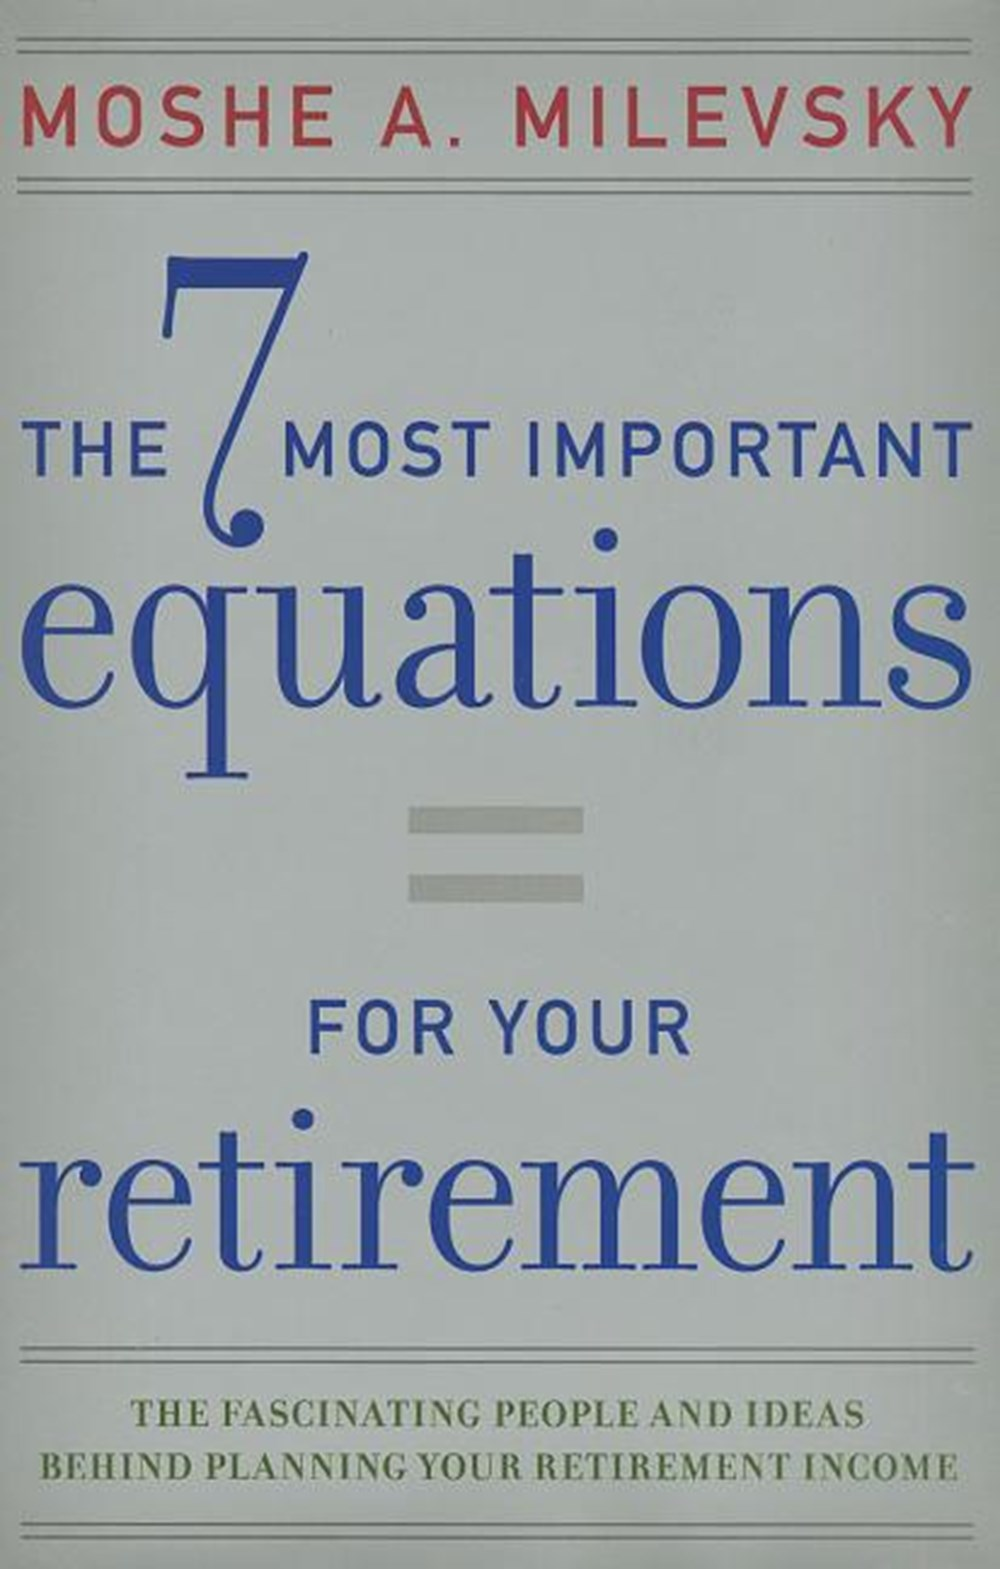 7 Most Important Equations for Your Retirement The Fascinating People and Ideas Behind Planning Your